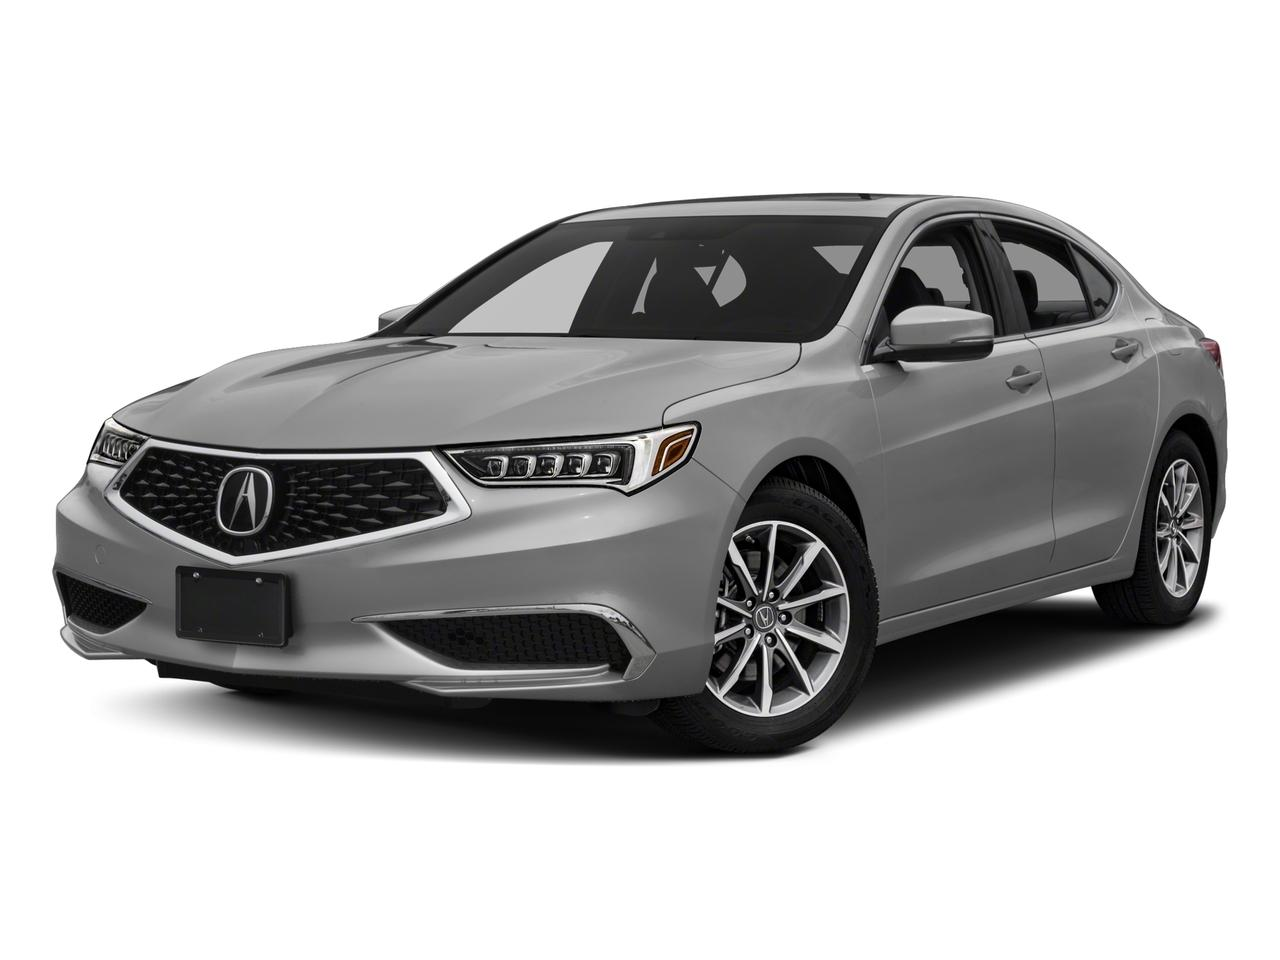 2018 Acura TLX Vehicle Photo in Trevose, PA 19053